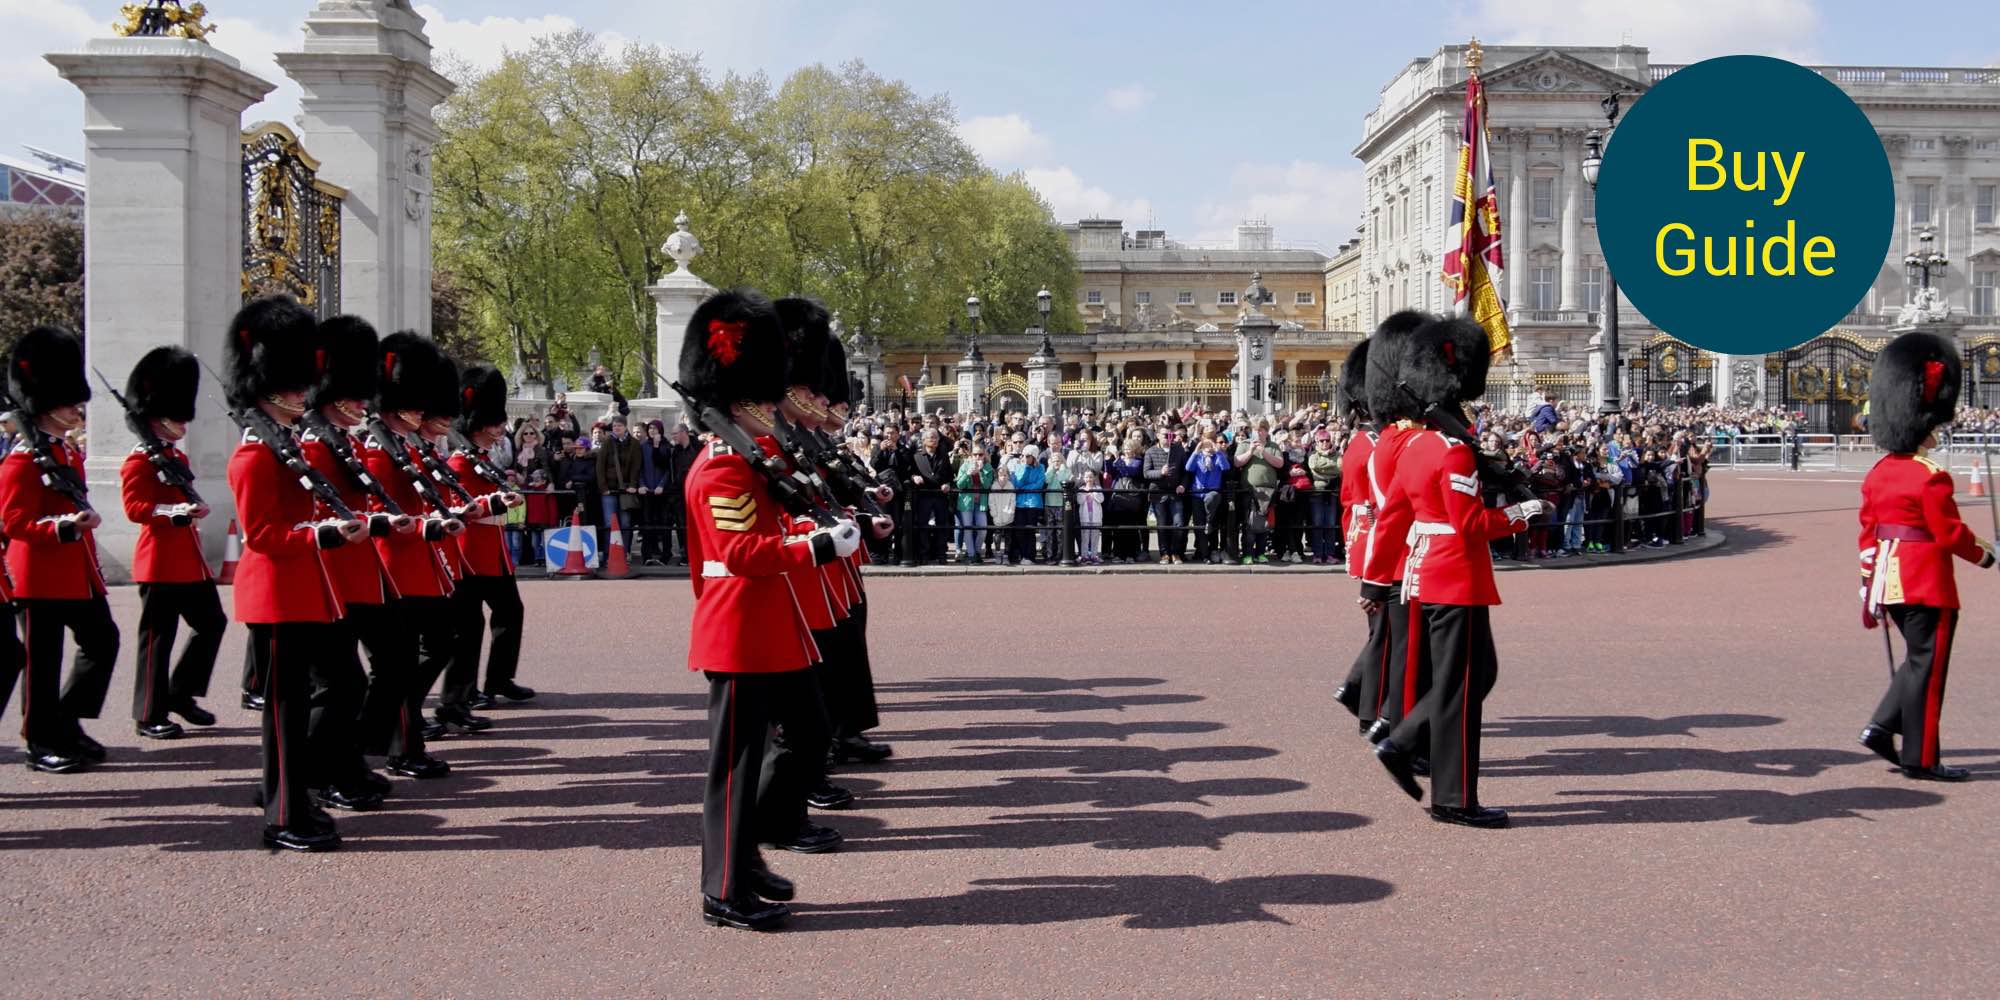 Ceremonial events in London - part of army history and tradition